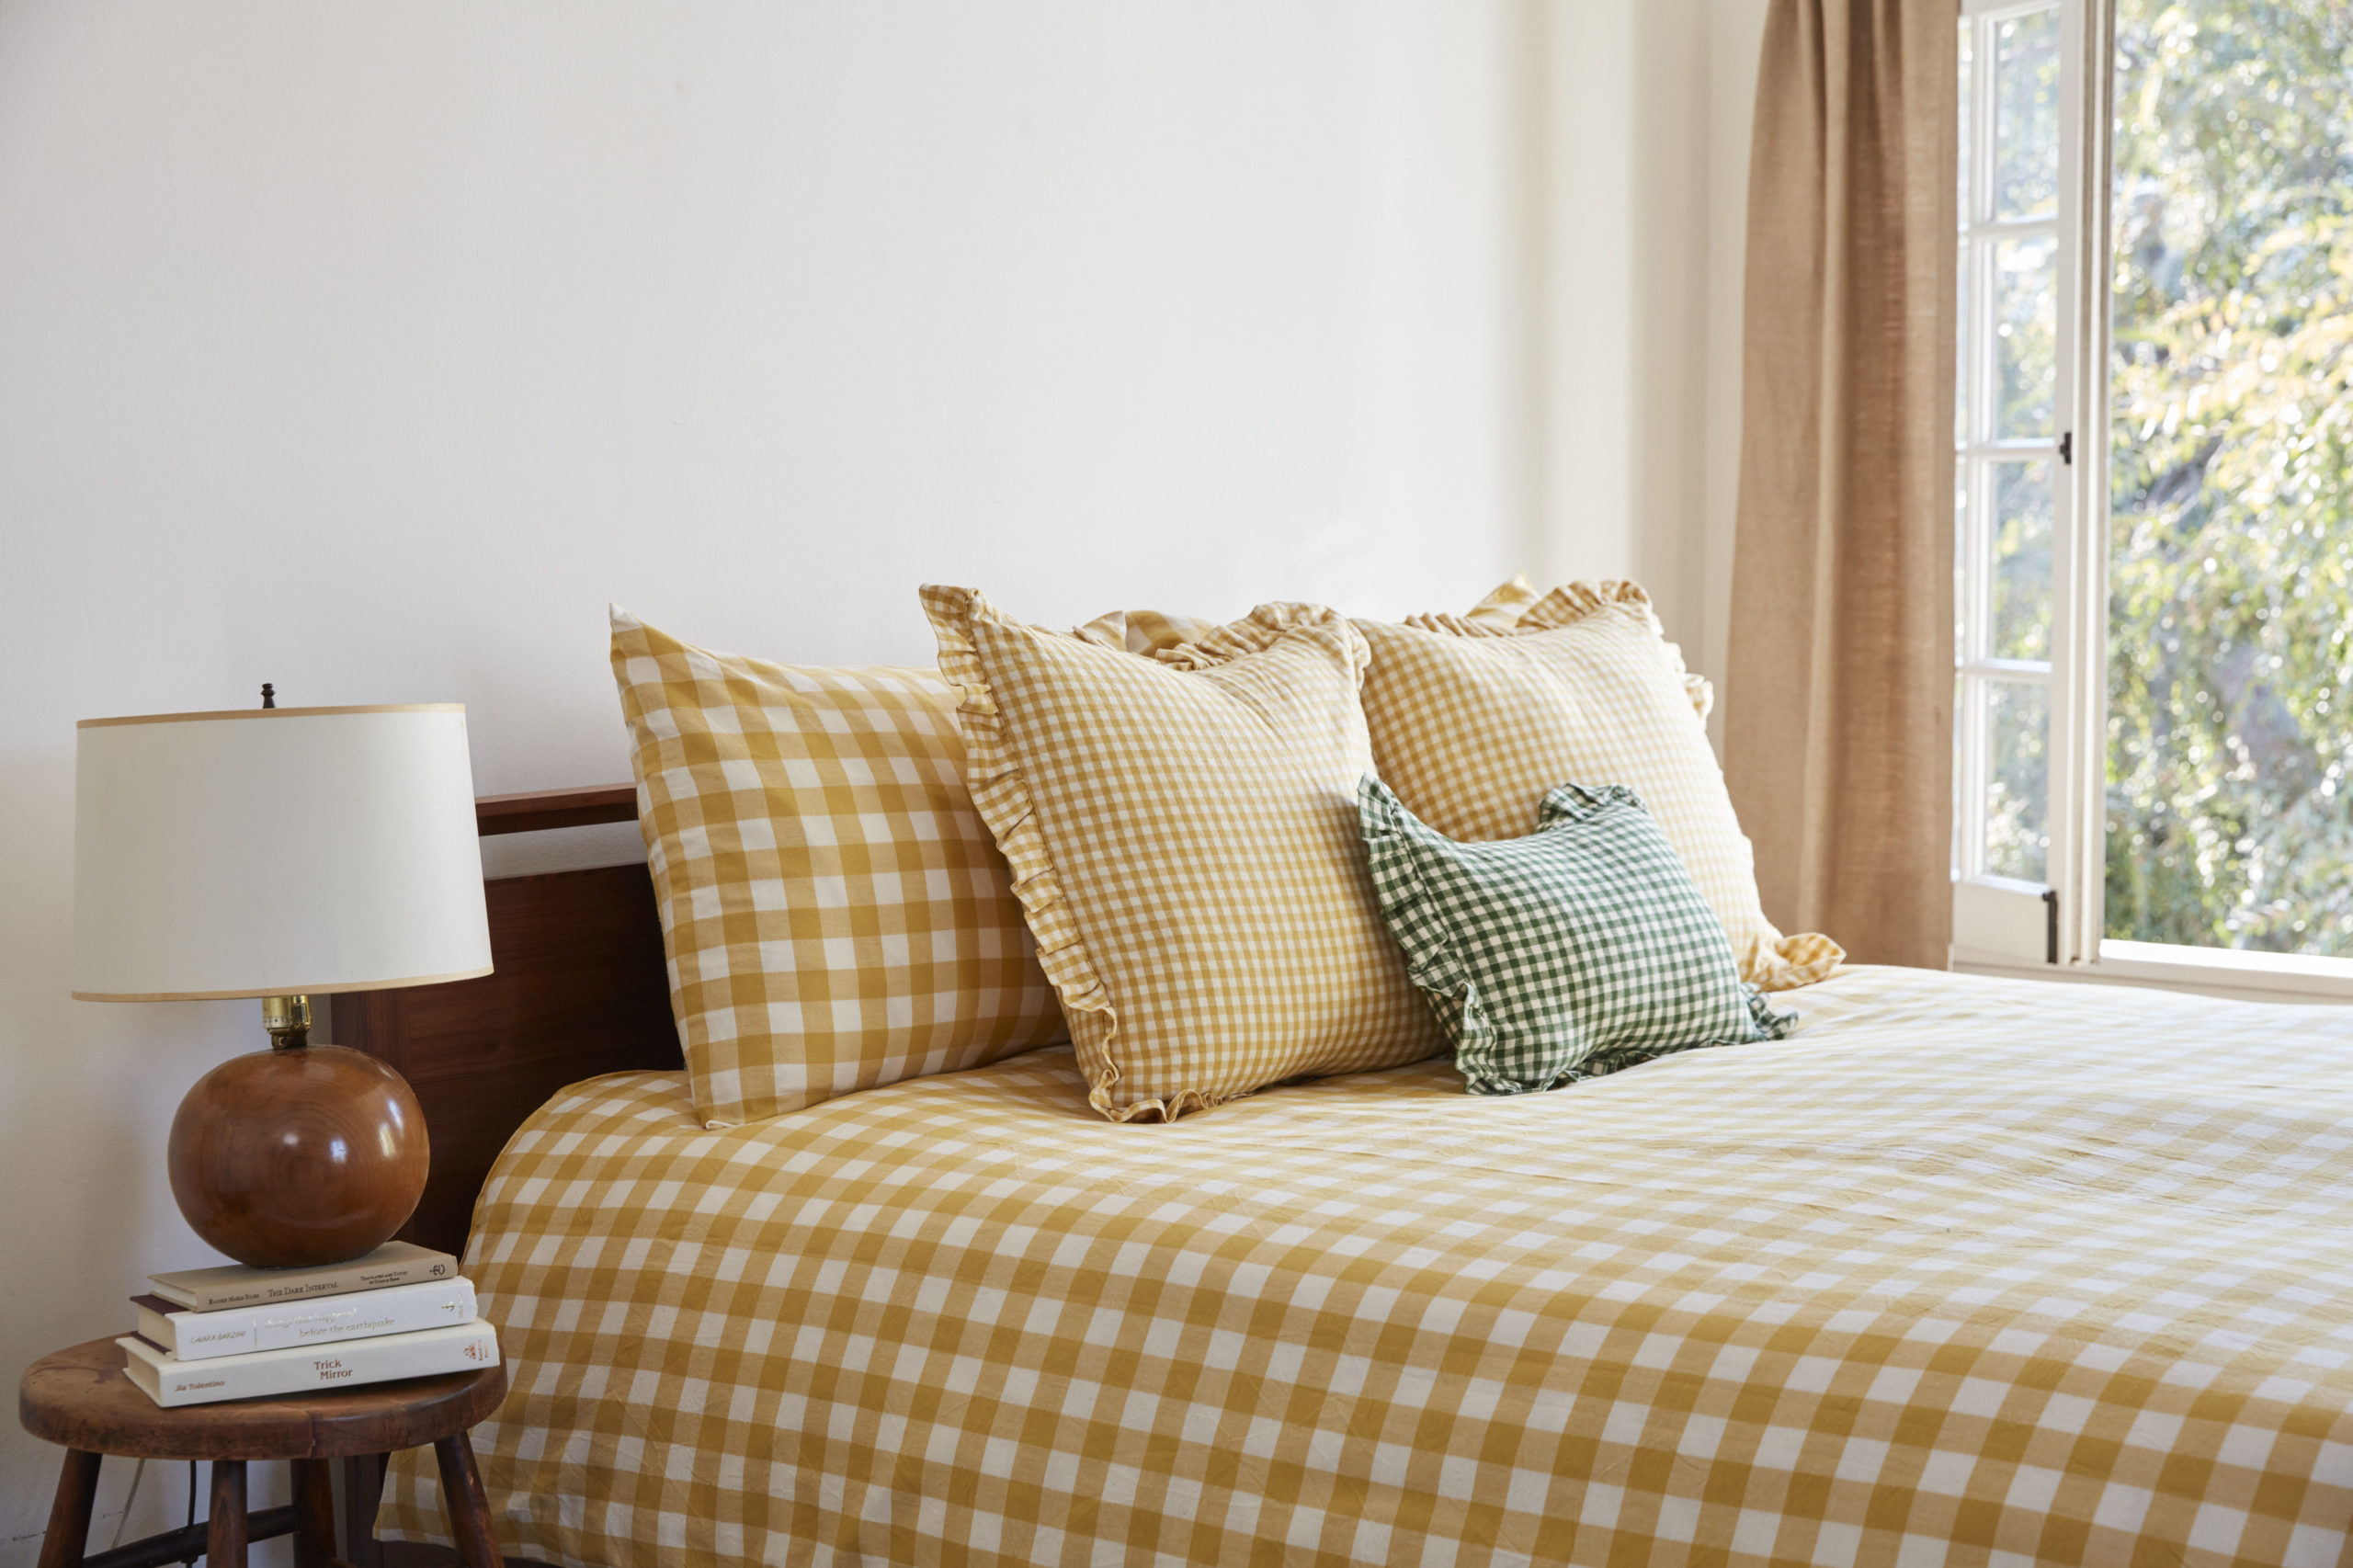 A SUNFLOWER GINGHAM DUVET